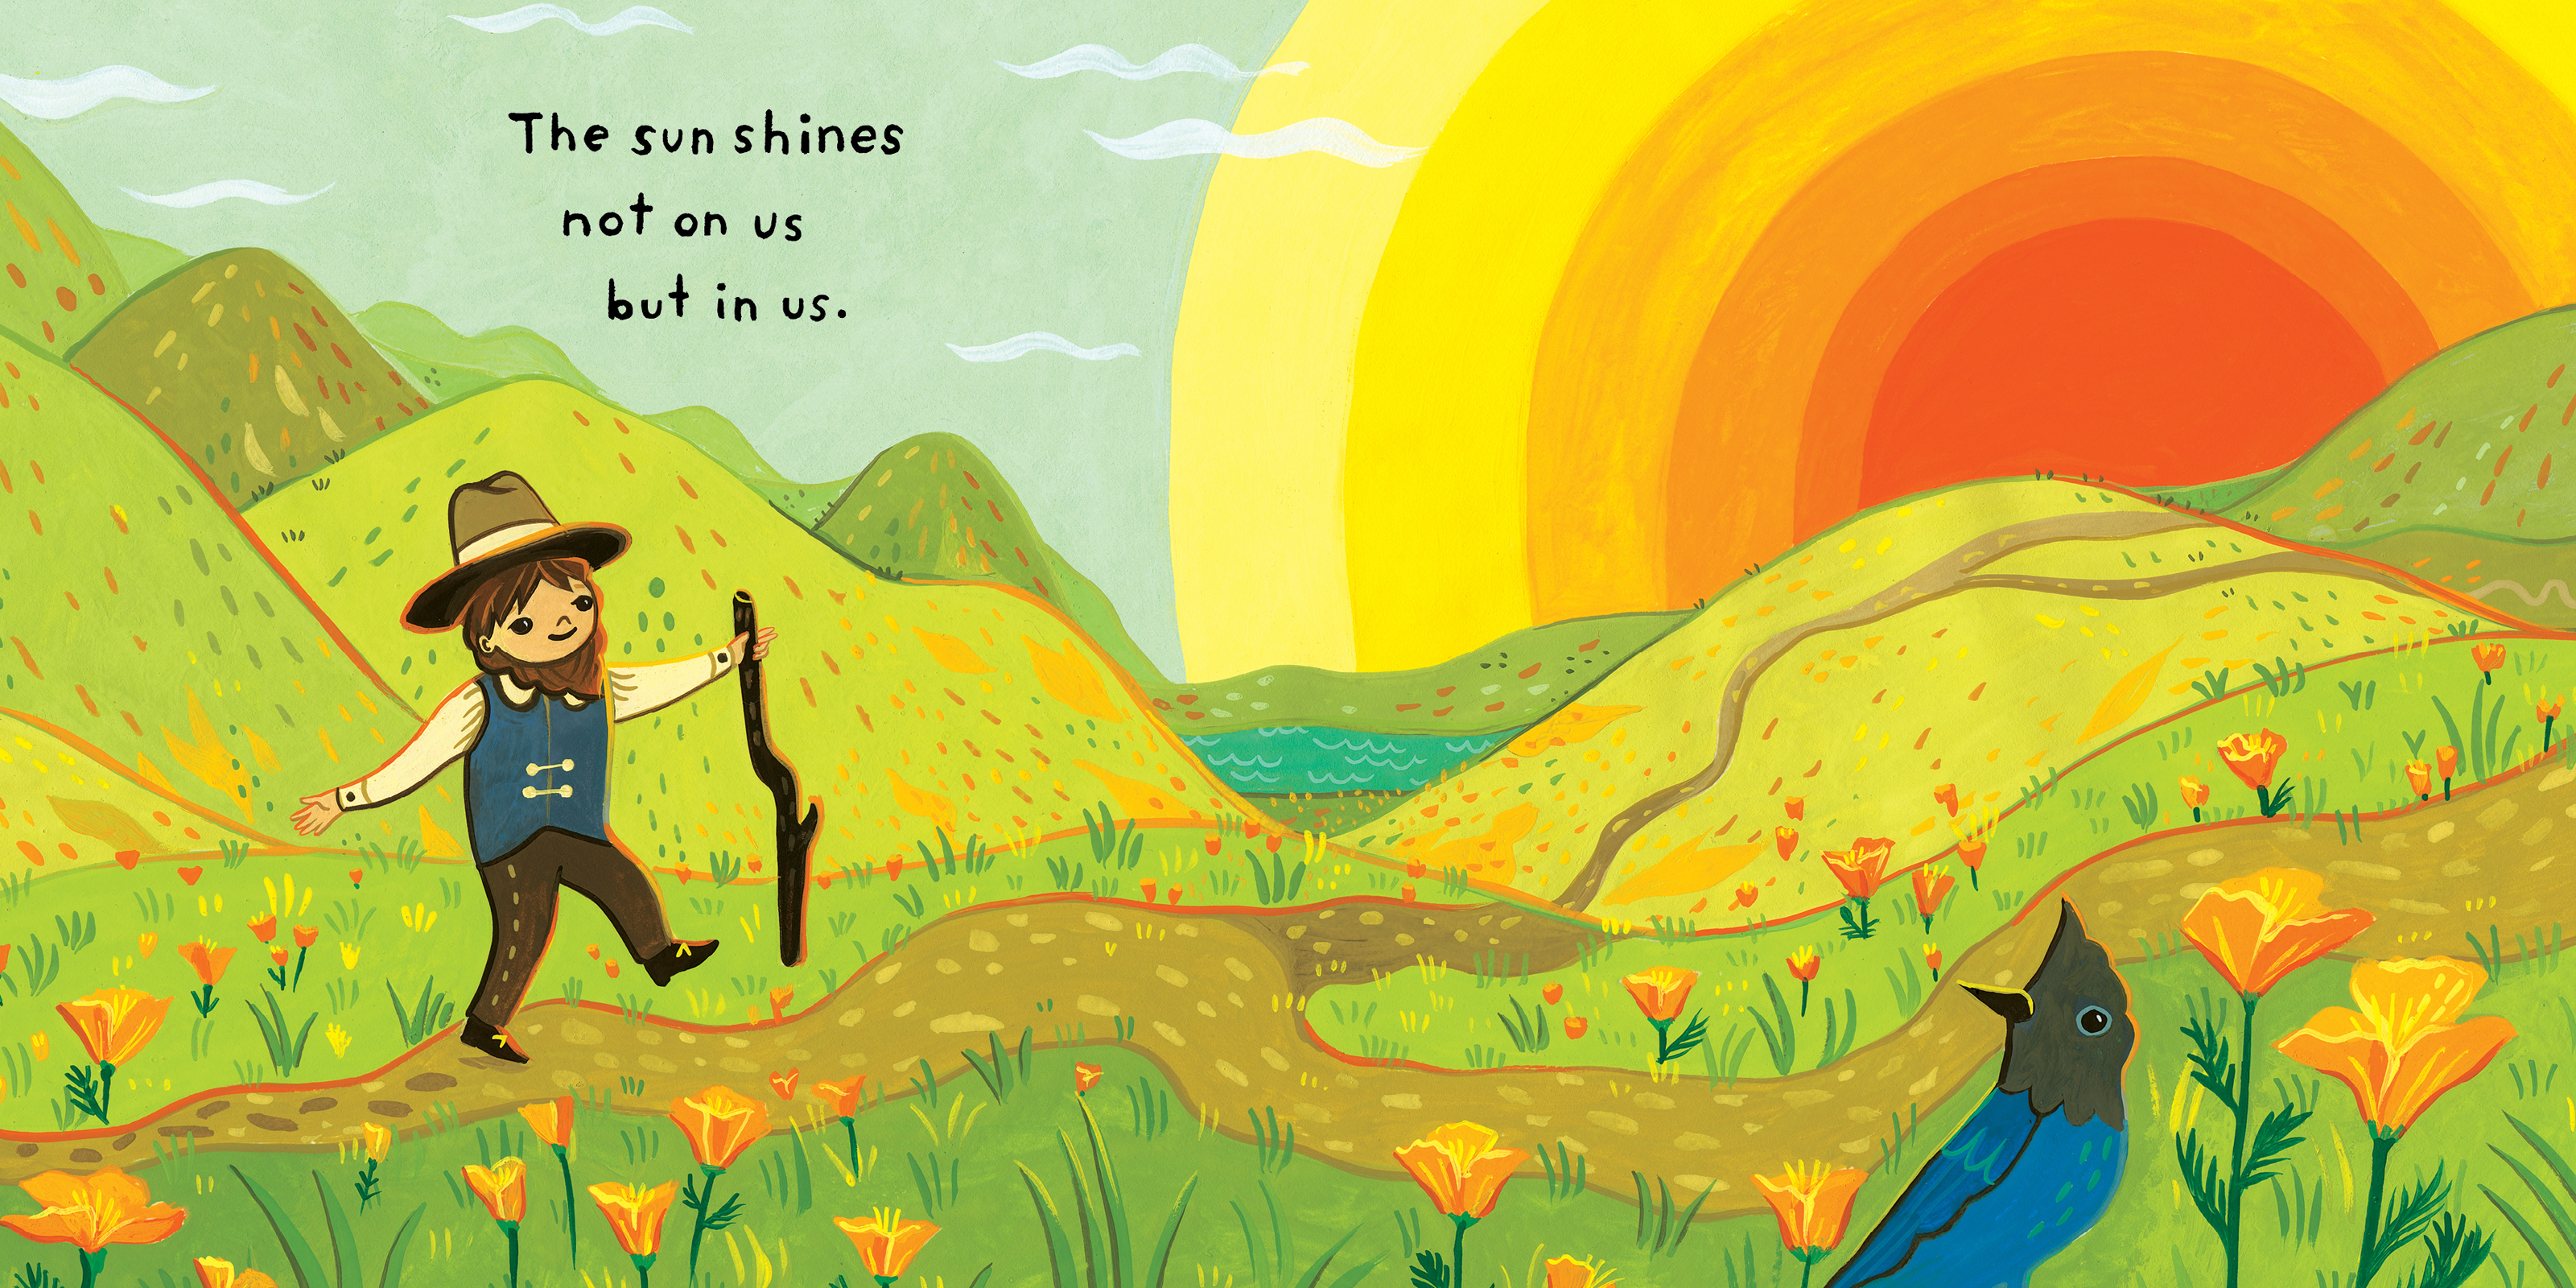 A page from Little Muir's Song -- written by John Muir, Illustrated by Susie Ghahremani